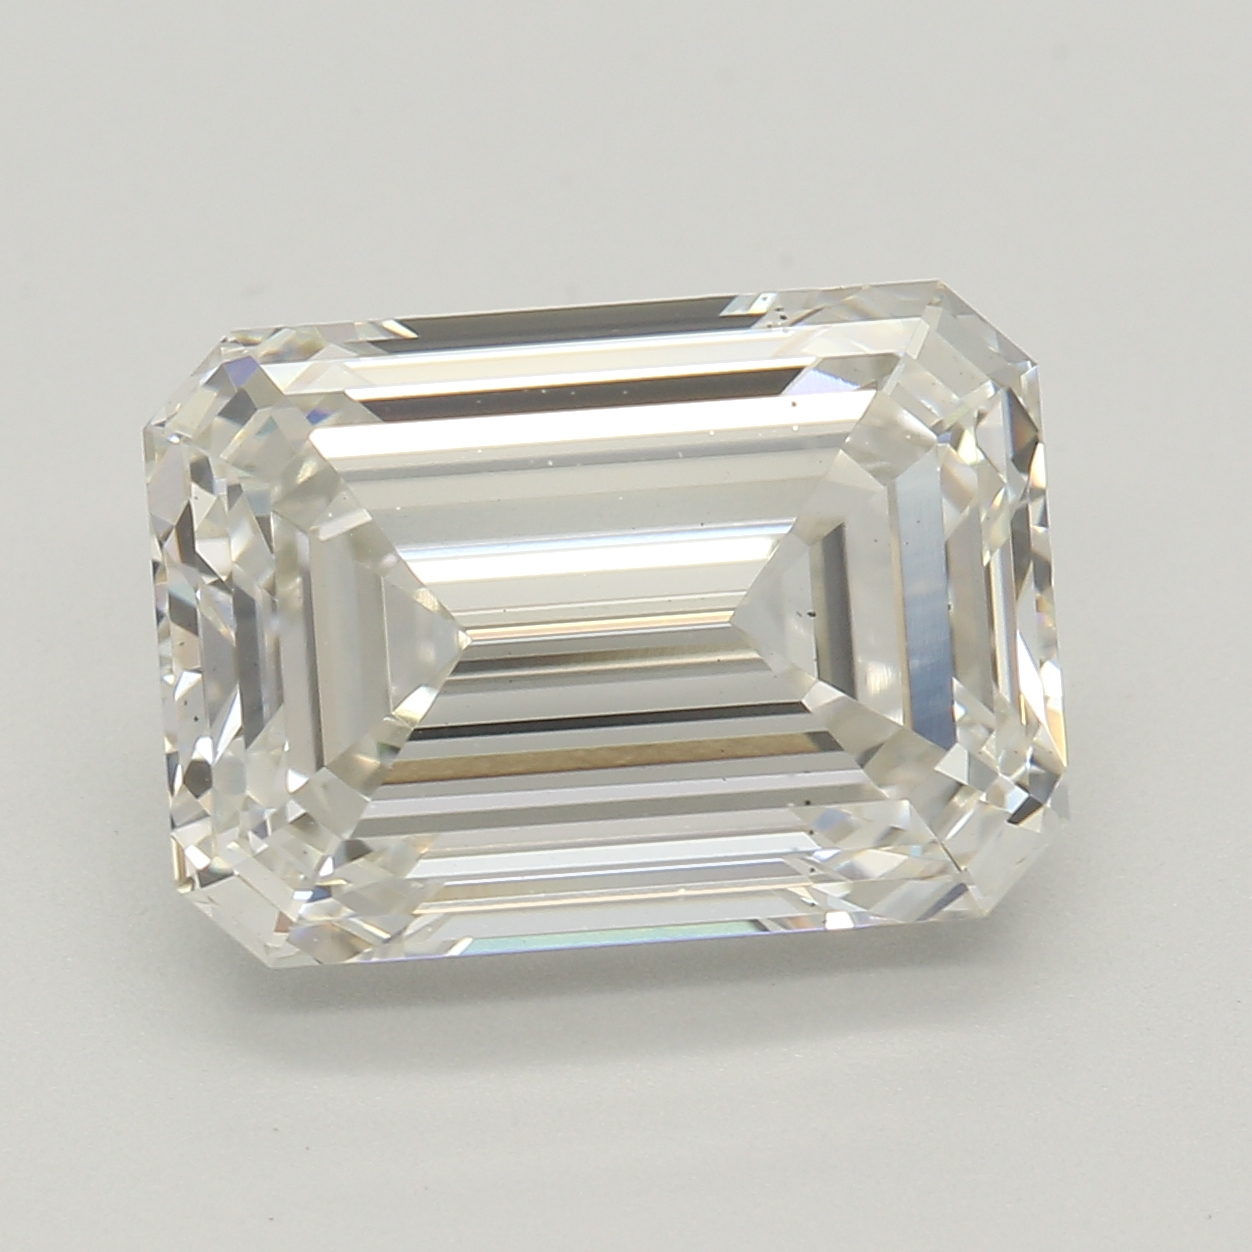 Emerald Cut 3.12 Carat I Color Vs2 Clarity Sku Lg55215271